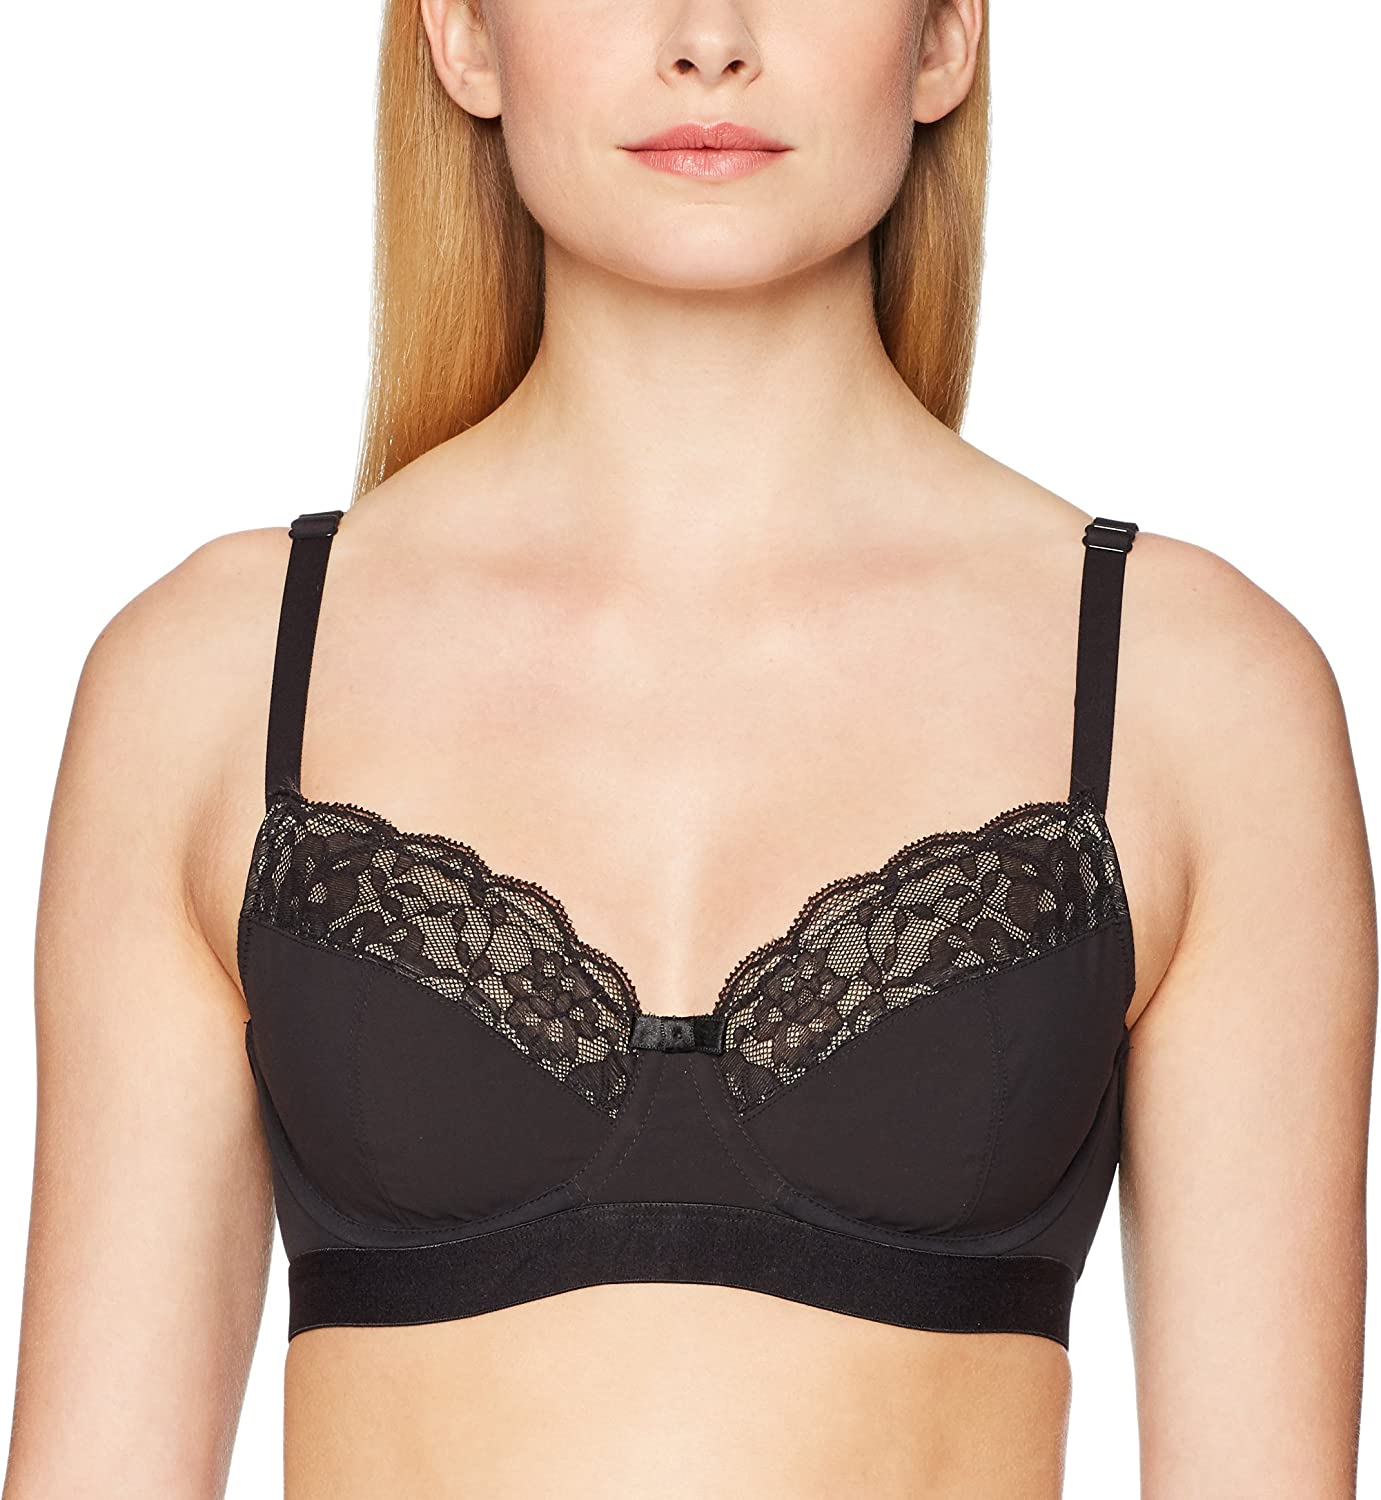 Wonderbra Womens Elegant Support Lace Back Underwire Bralette